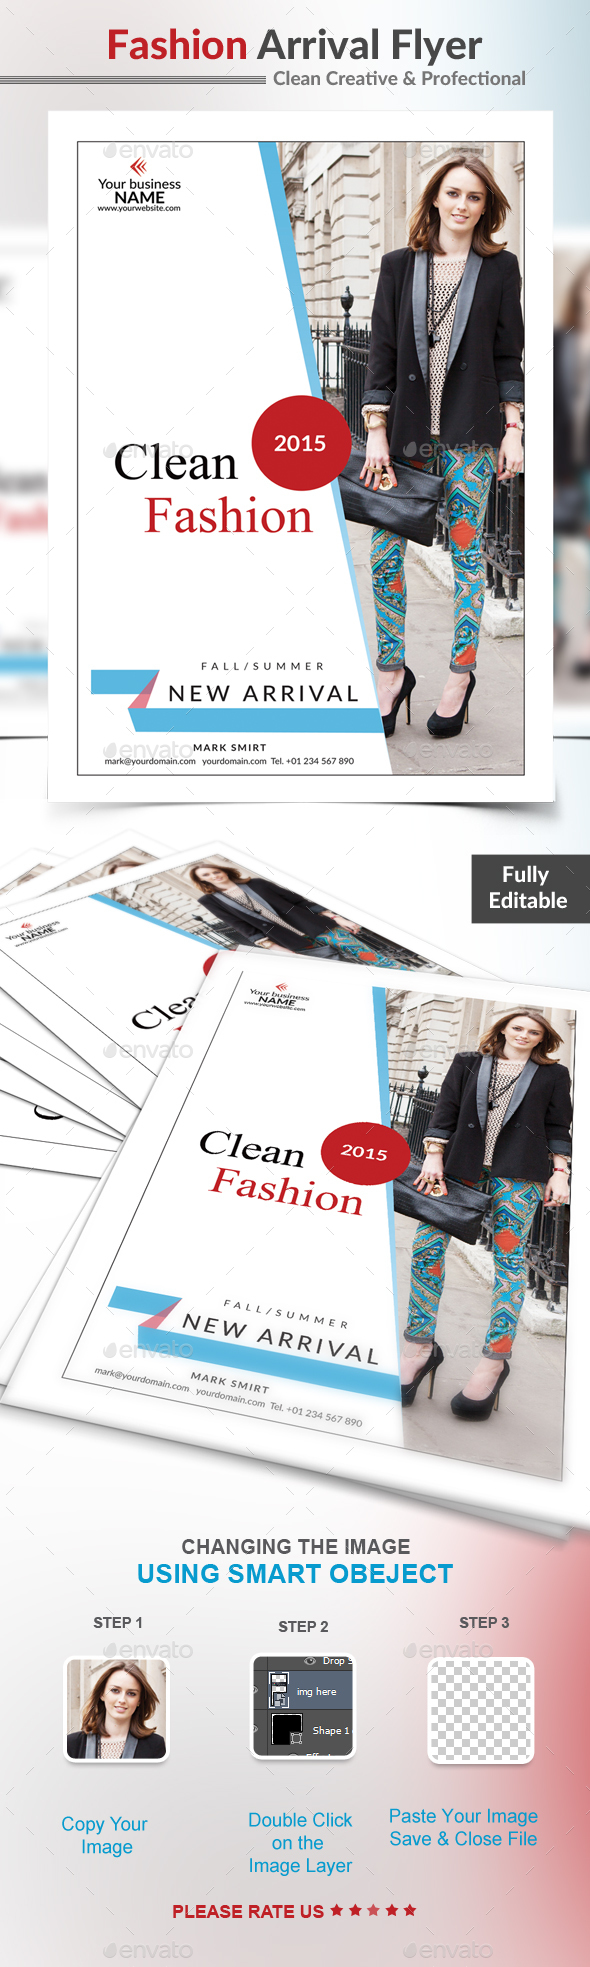 Fashion Arrival Flyer - Commerce Flyers